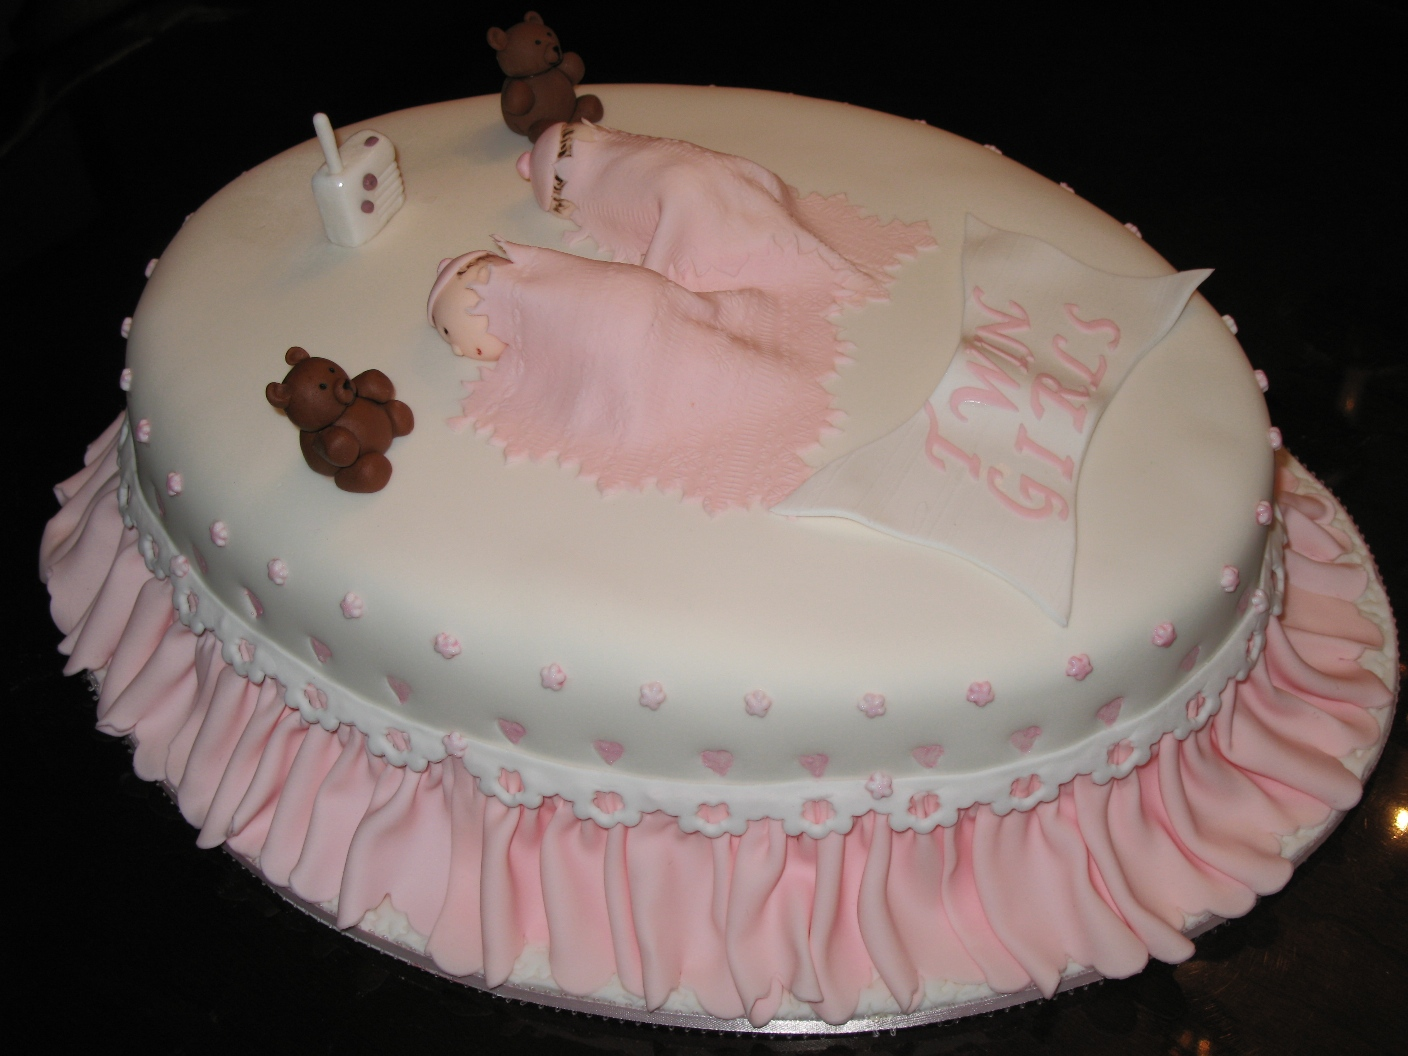 Cake Design Baby Shower Girl : Cute Baby Shower Cake Designs For Girls - Best Collections ...